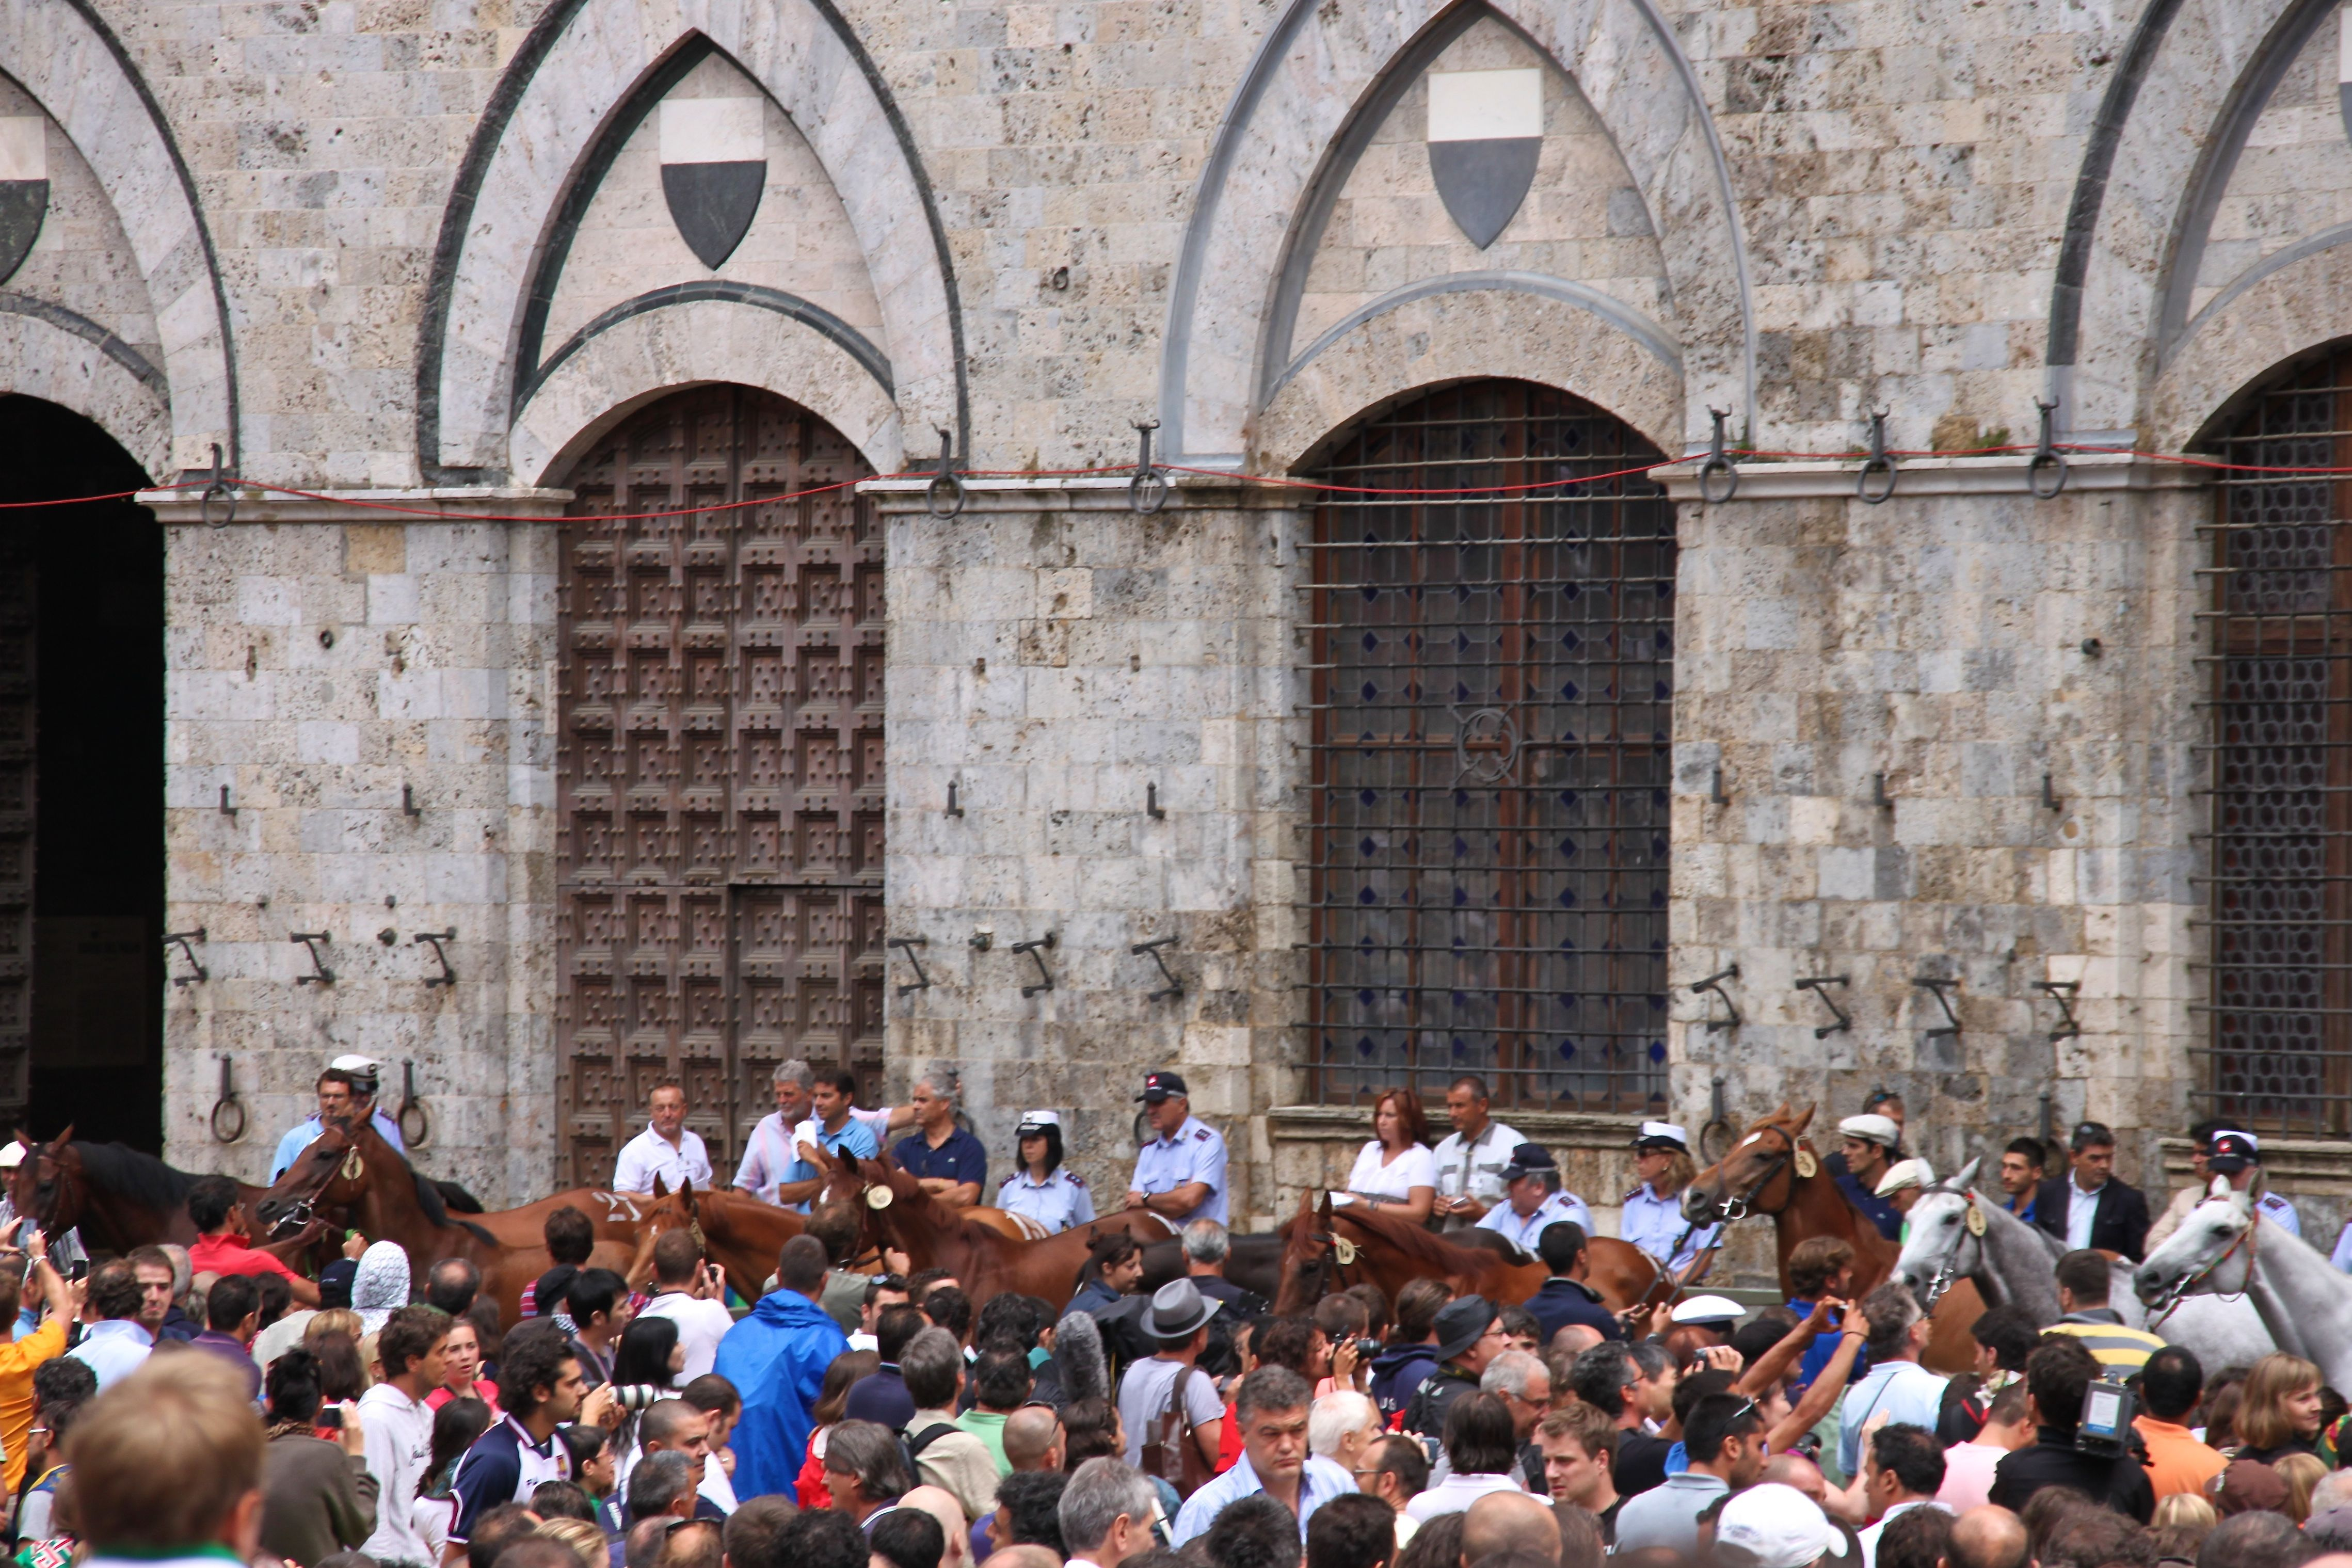 Photo of the Palio racehorses waiting in Siena's Piazza del Campo to be assigned to the contradas by lottery